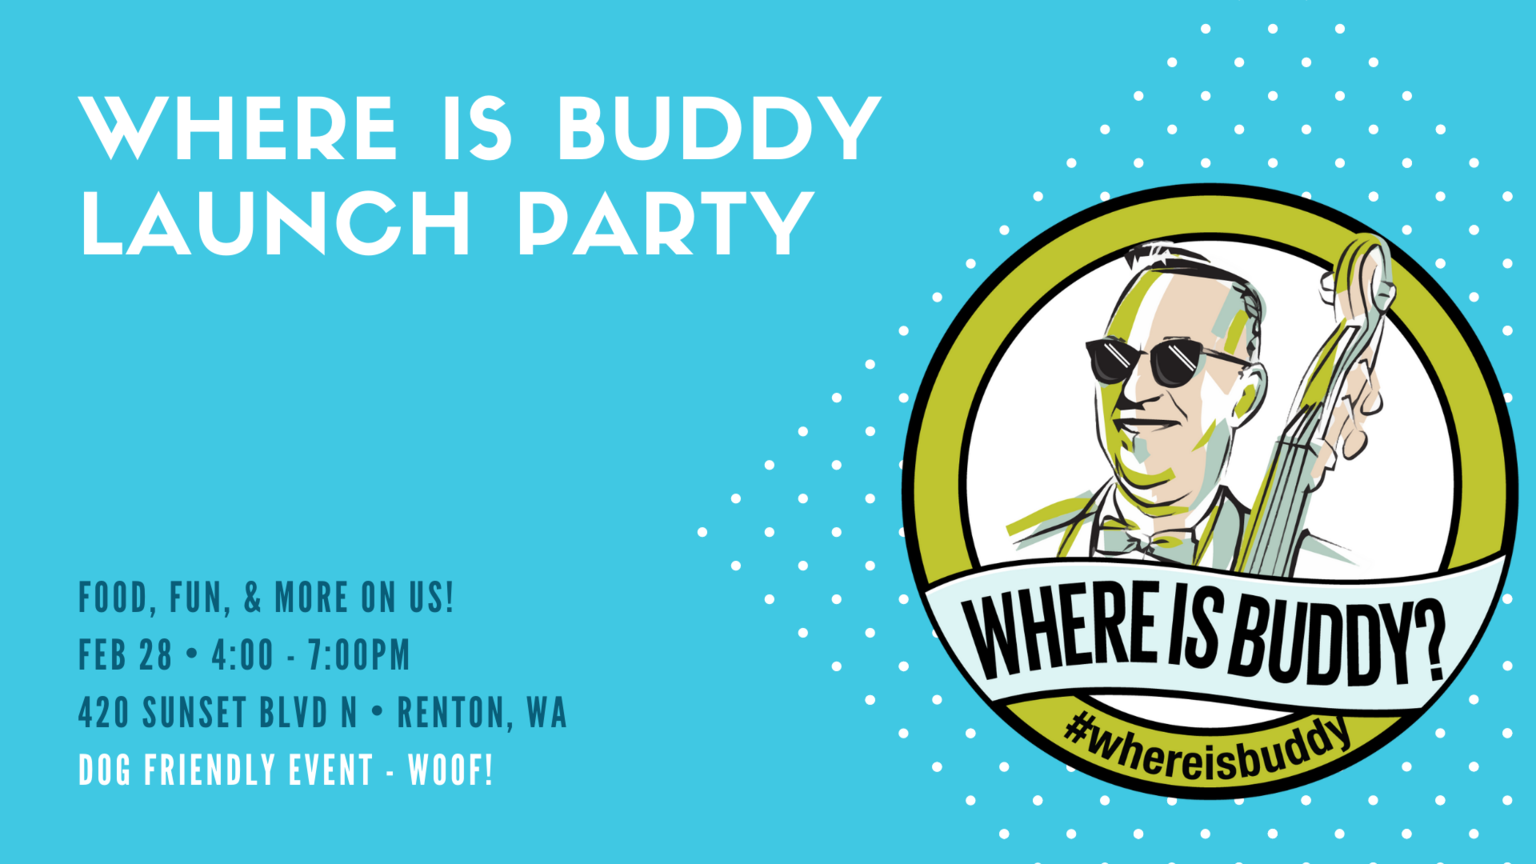 Where is buddy event